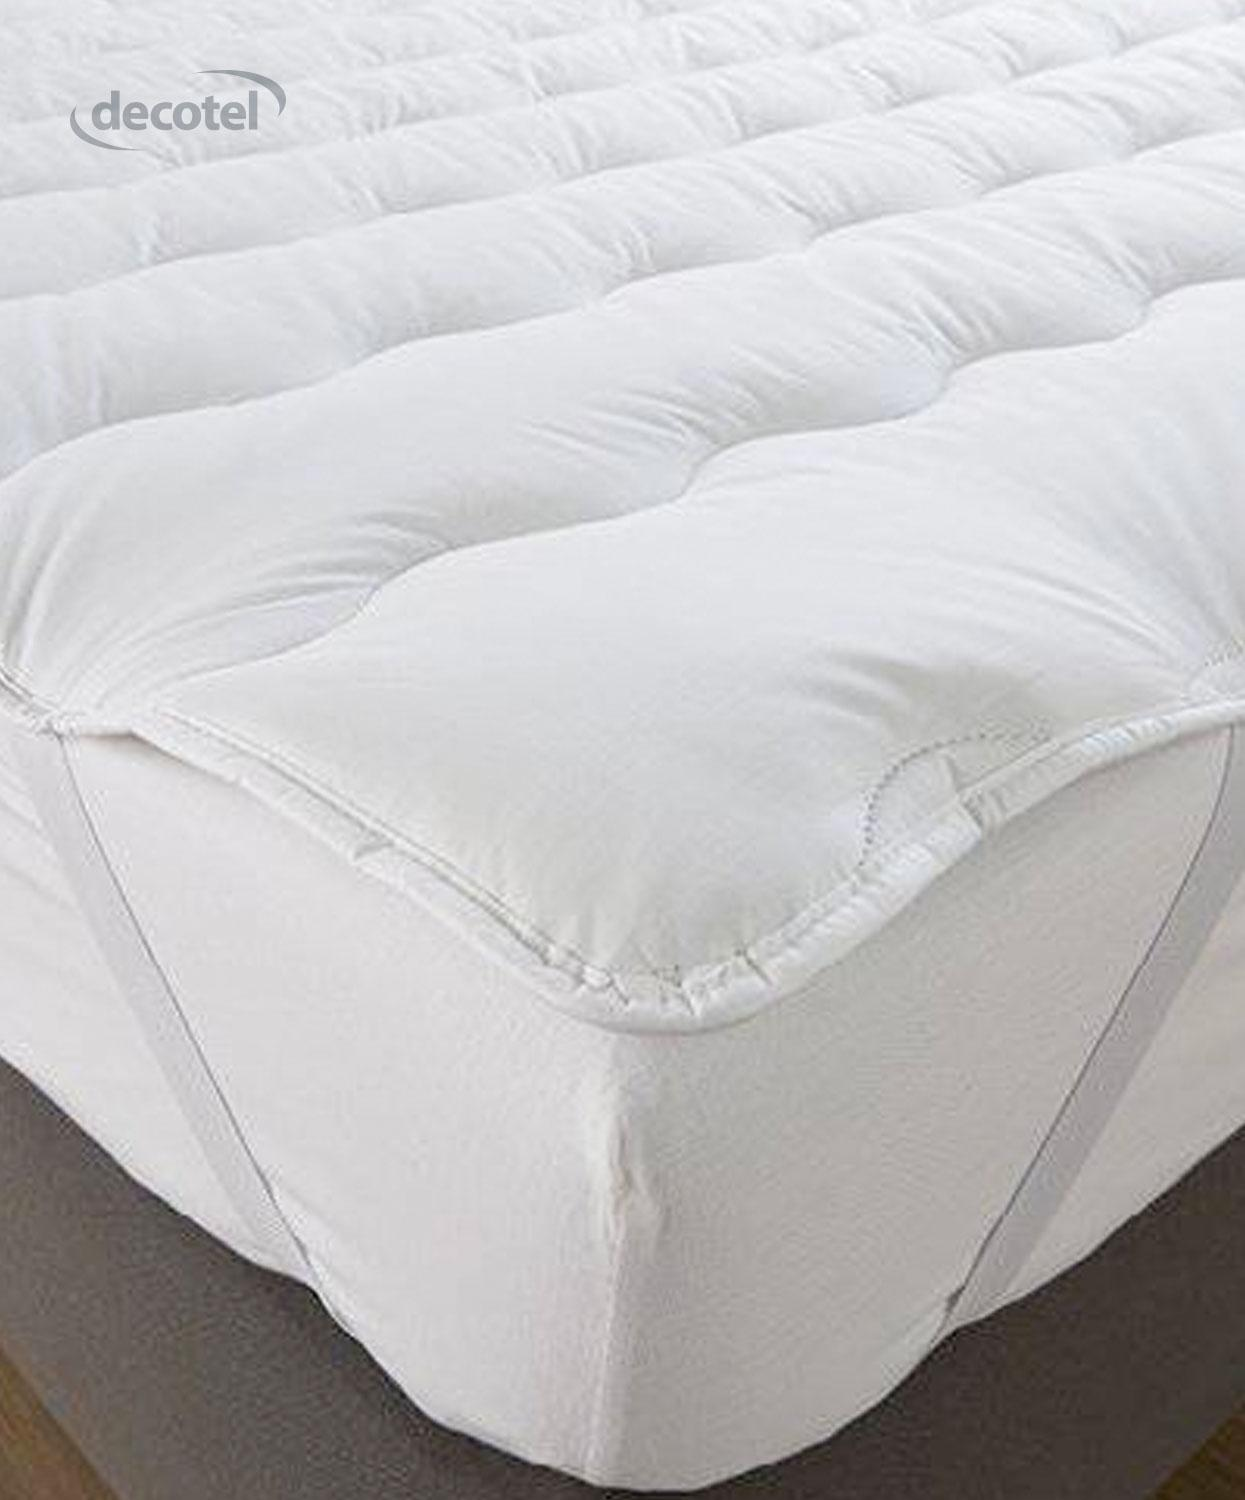 Woburn Mattress Topper